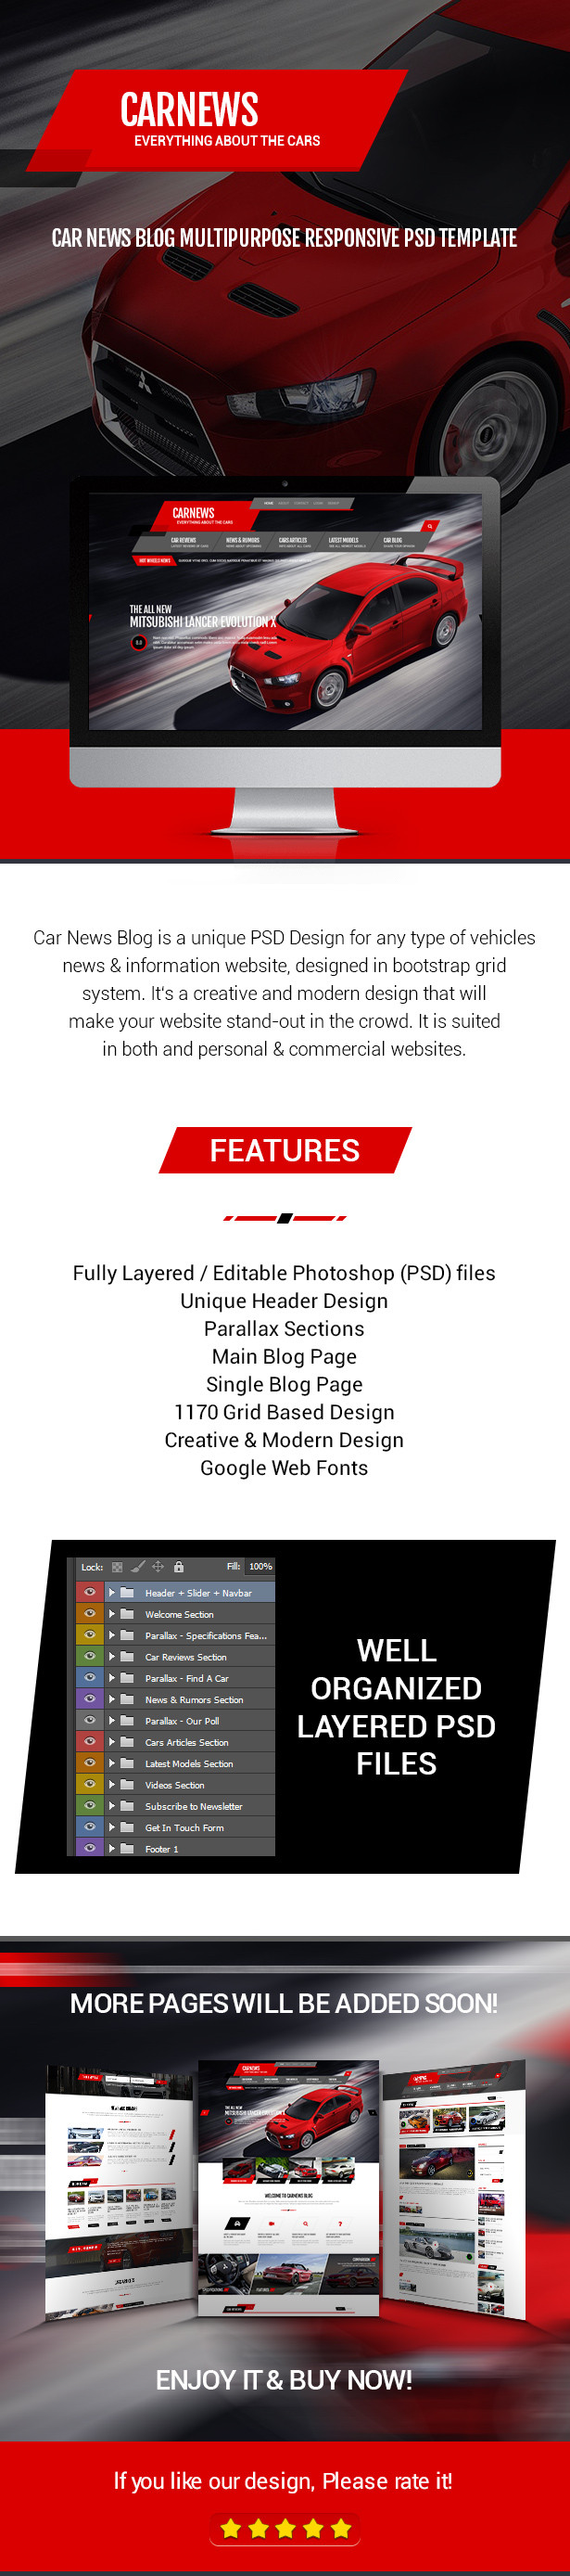 news information website designed in bootstrap grid system it s a creative and modern design that will make your website stand out in the crowd